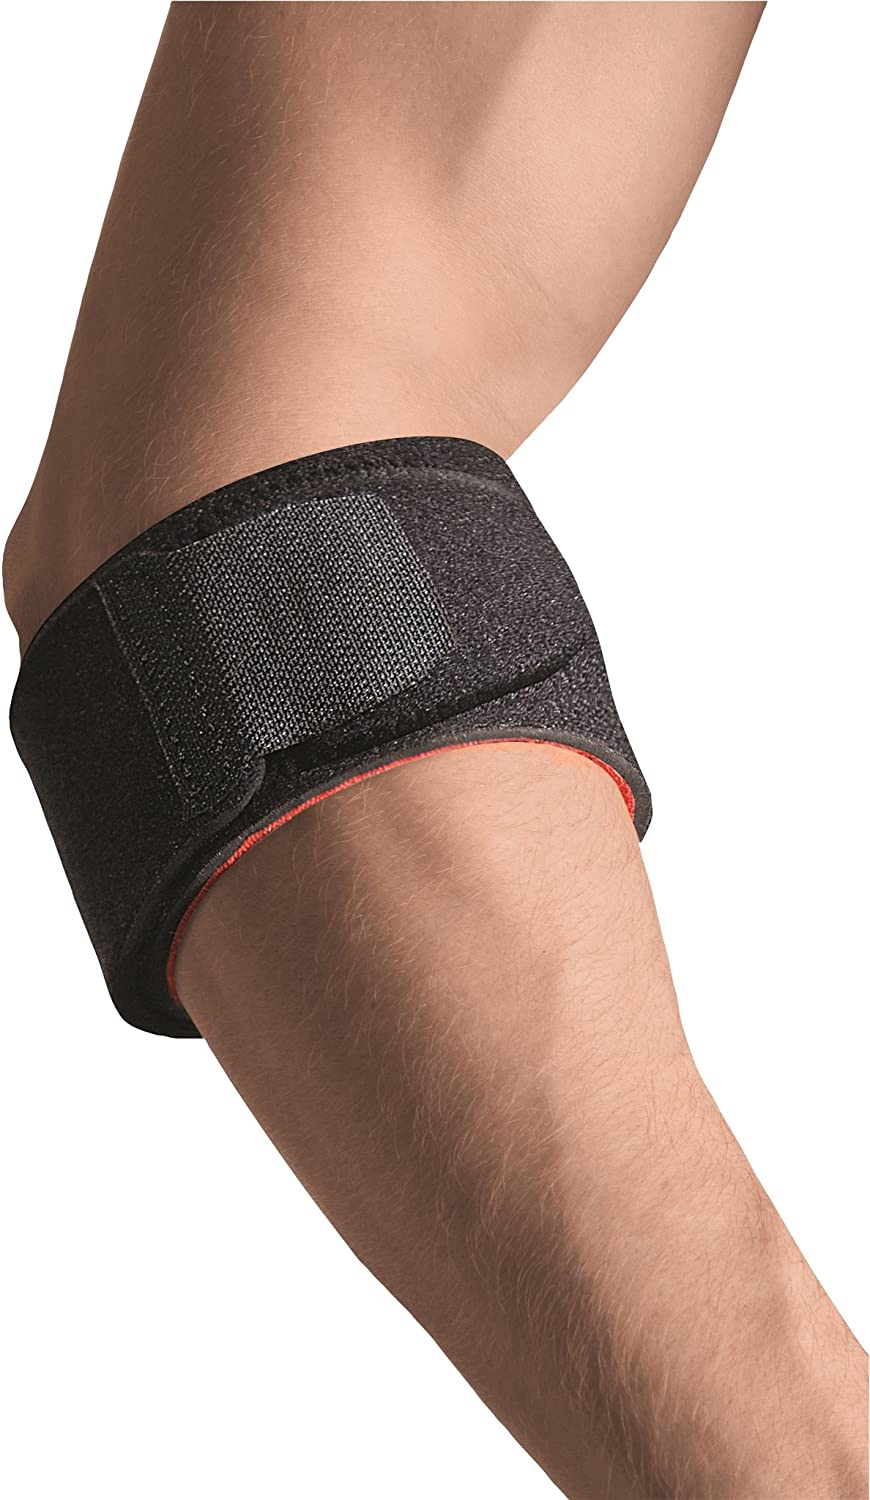 Thermoskin Sport Tennis Don't miss the campaign Elbow Oklahoma City Mall Black One Size Brace